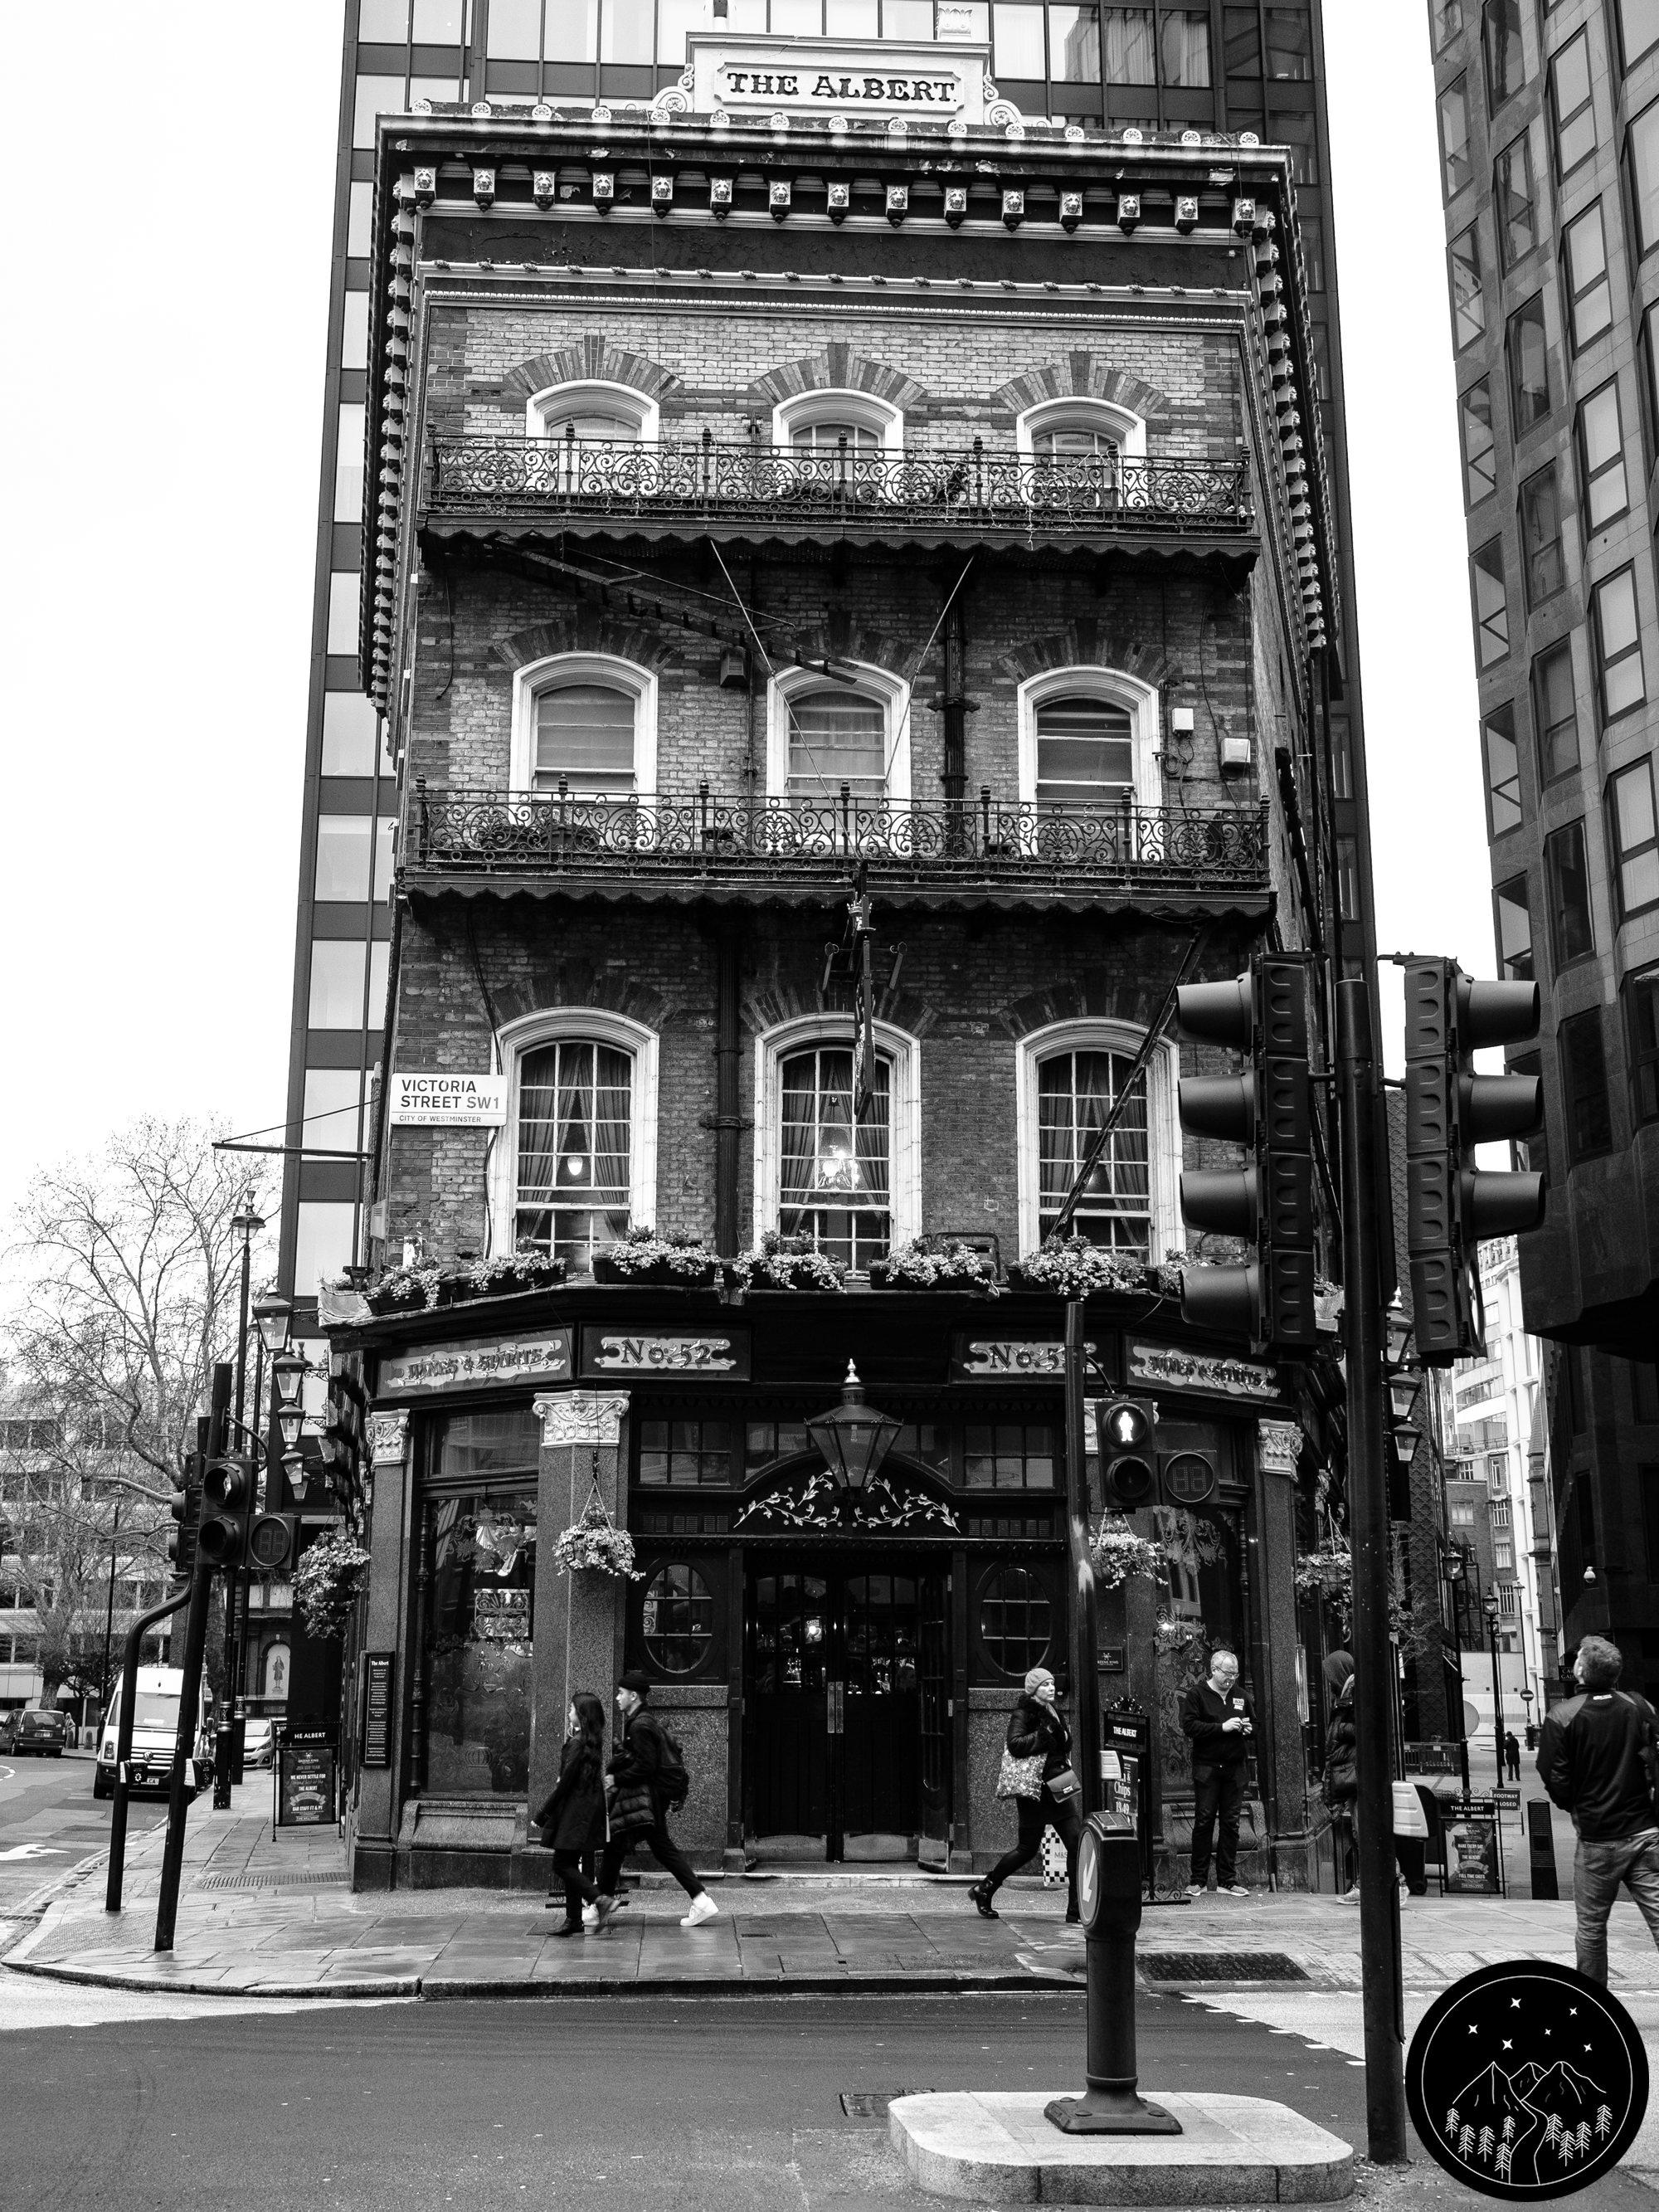 Image Description: The Albert pub on Victoria Street, London